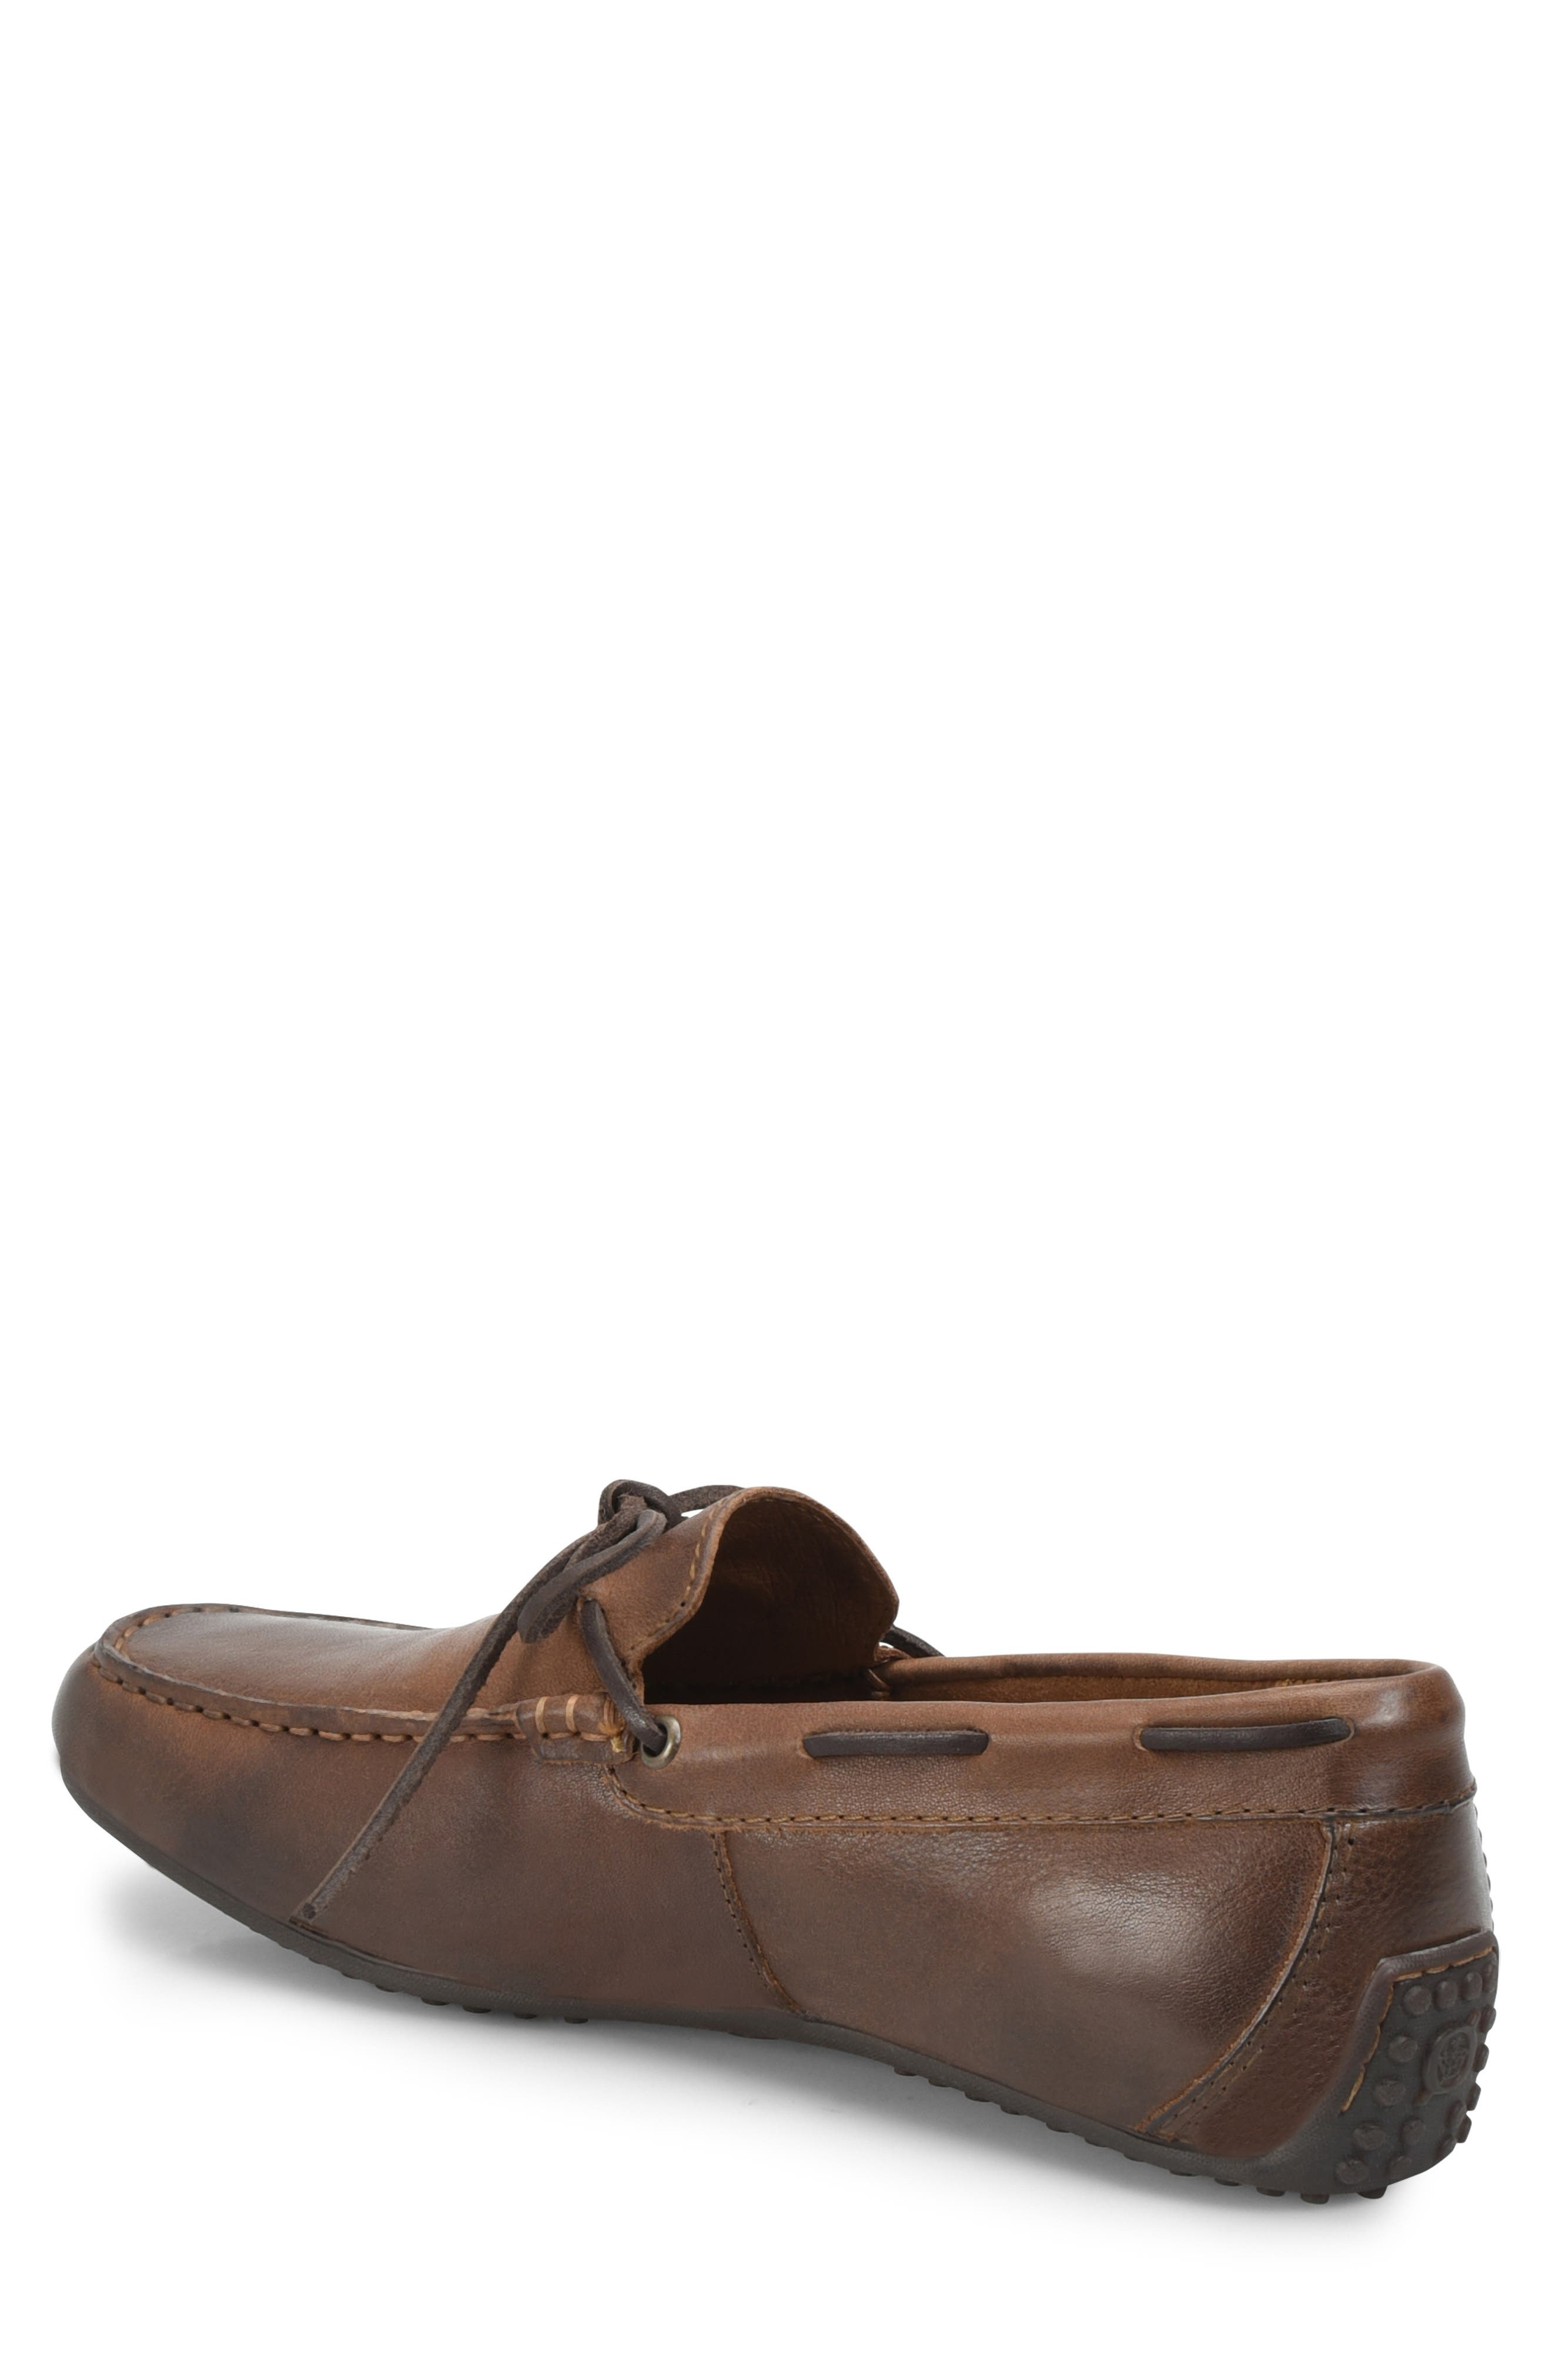 Virgo Driving Shoe,                             Alternate thumbnail 2, color,                             BROWN/BROWN LEATHER